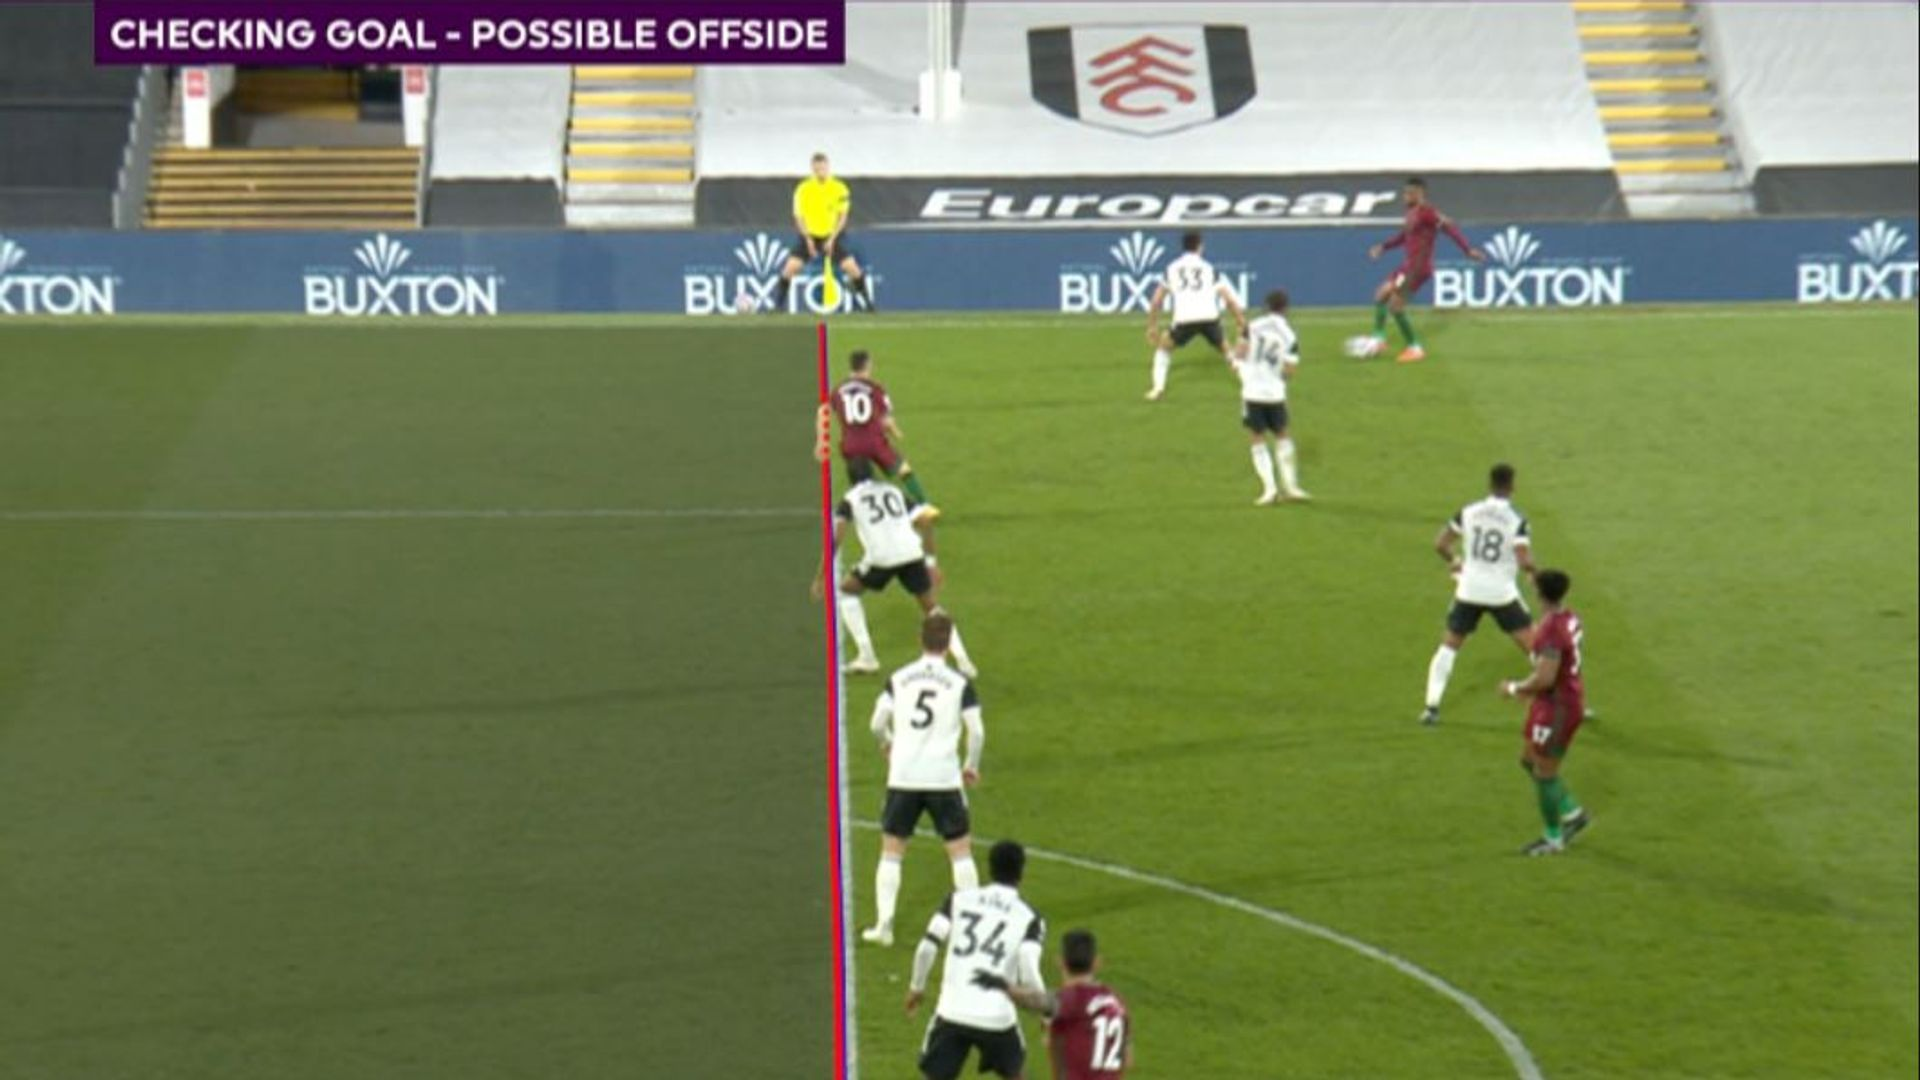 Premier League VAR to use 'thicker lines' for offside calls next season